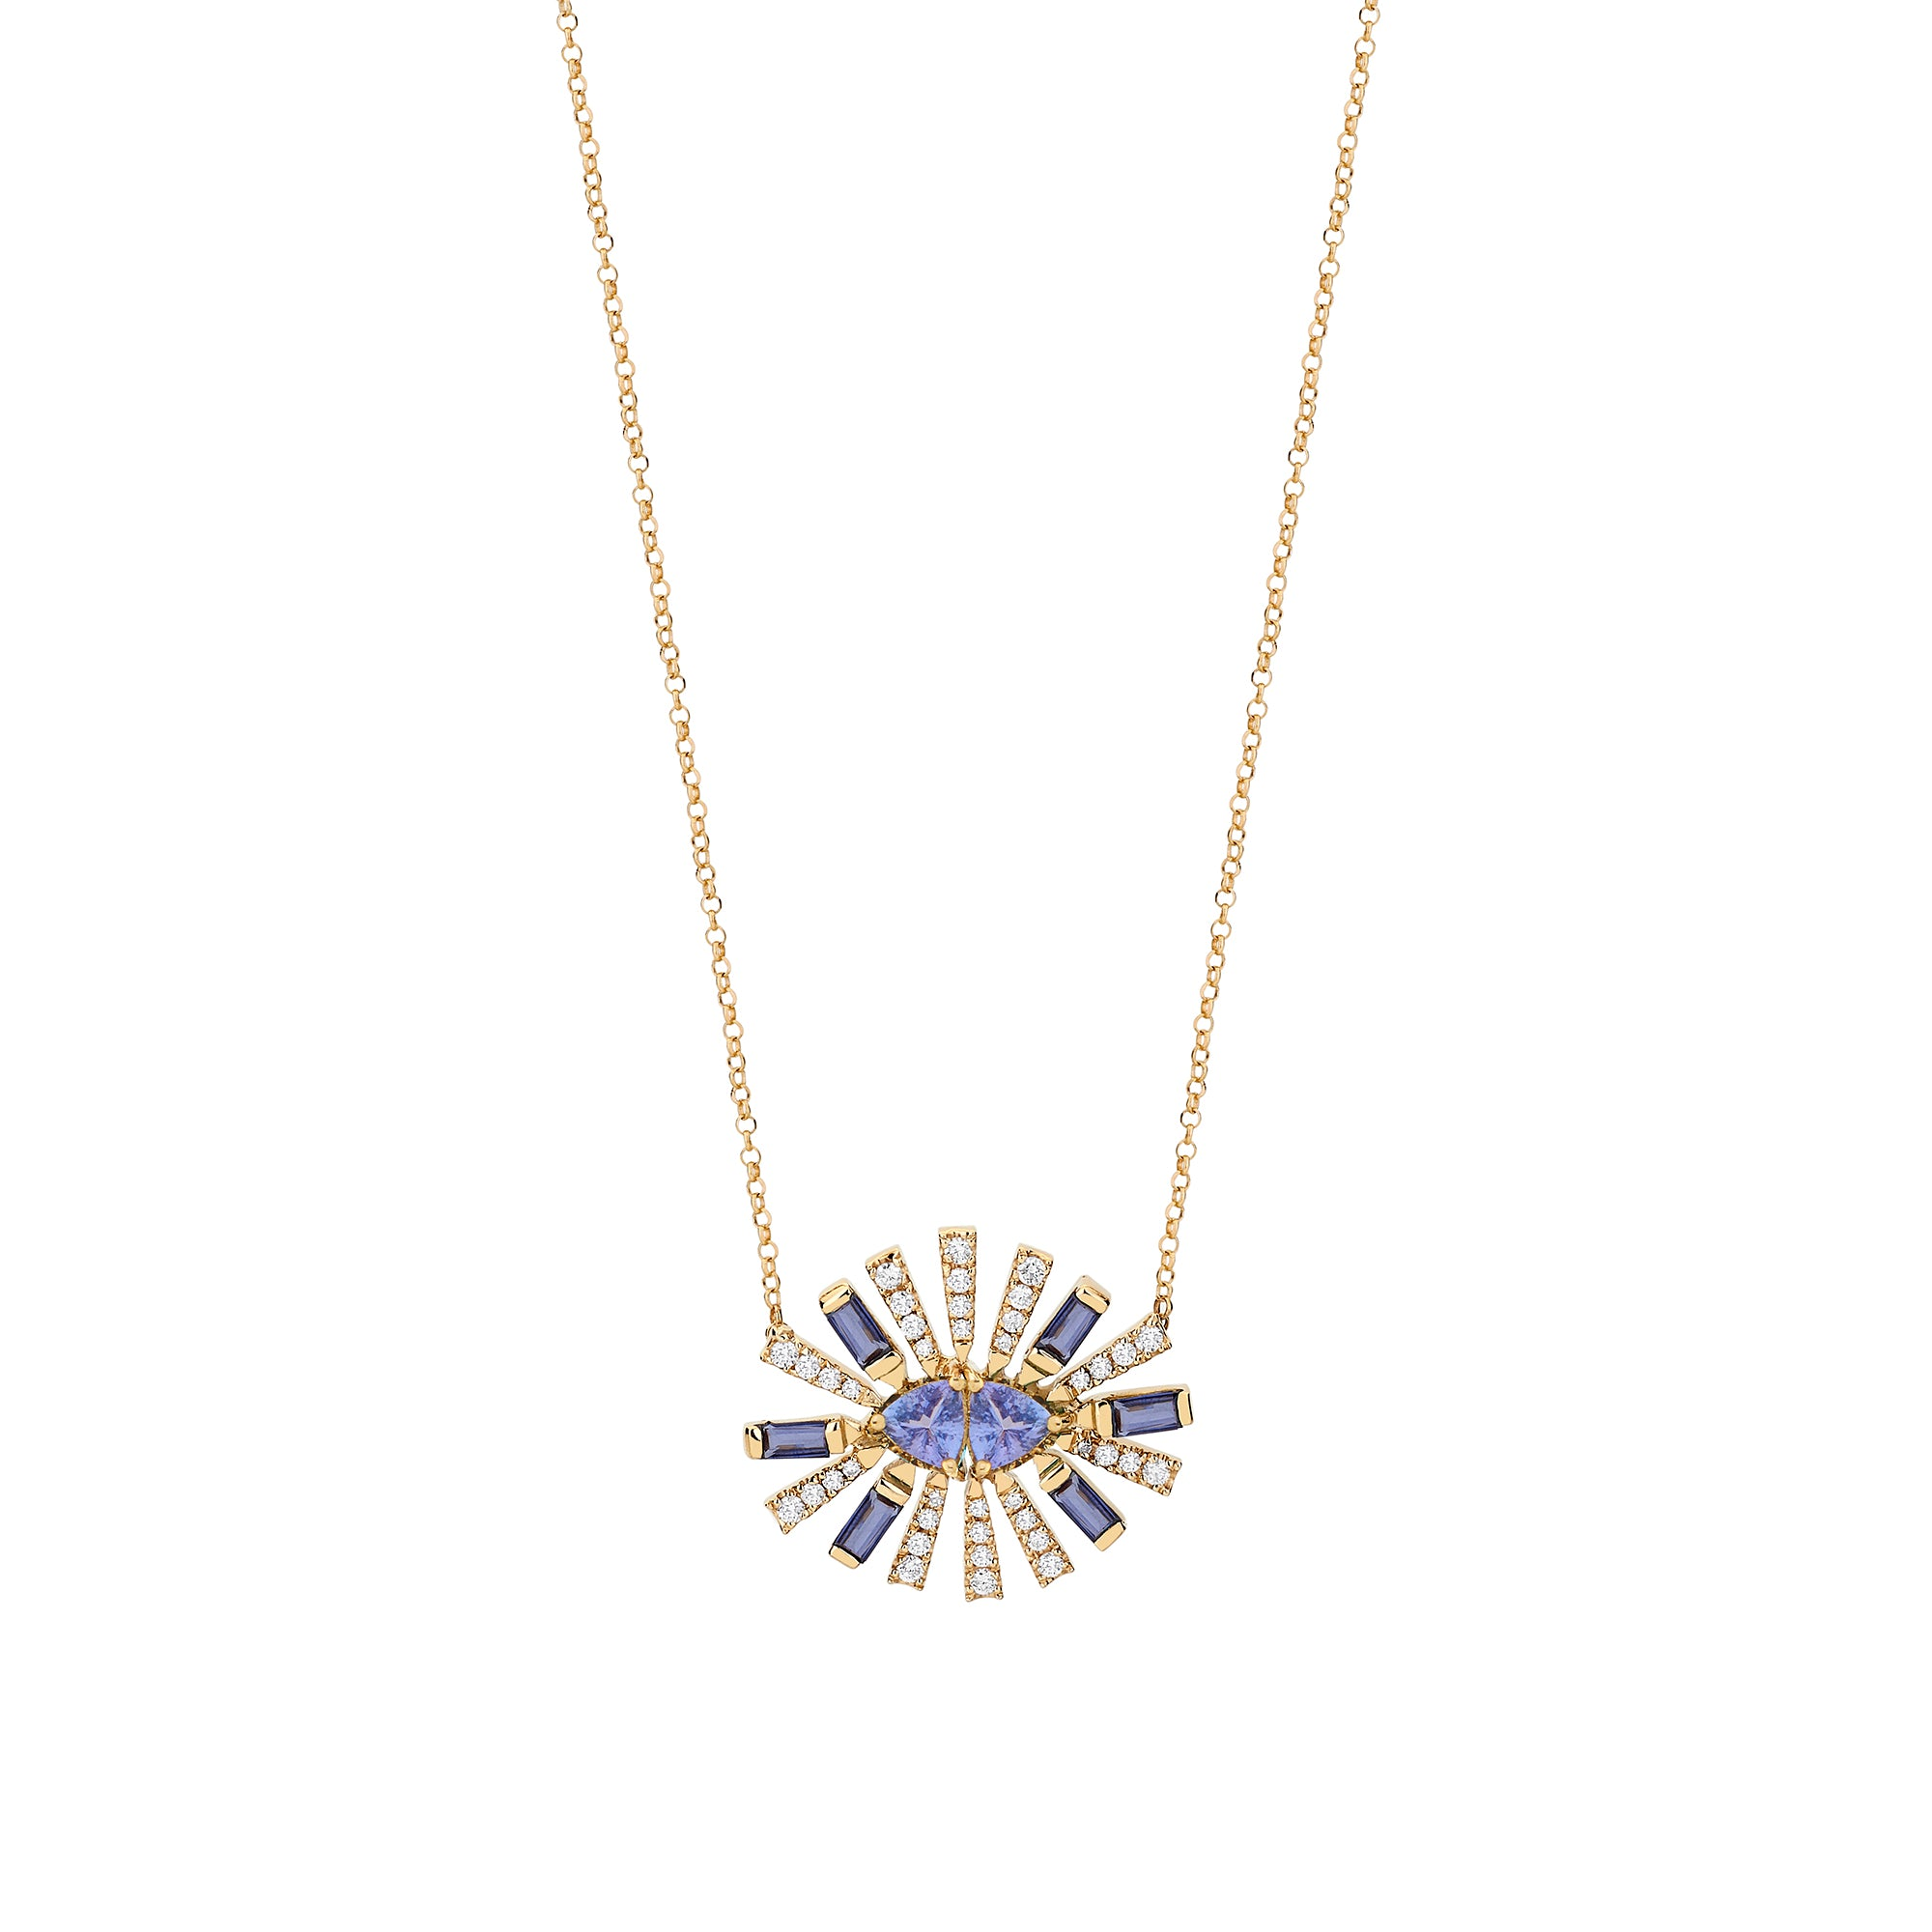 Iolite Double Sunshine Necklace - Carol Kauffman - Necklaces | Broken English Jewelry